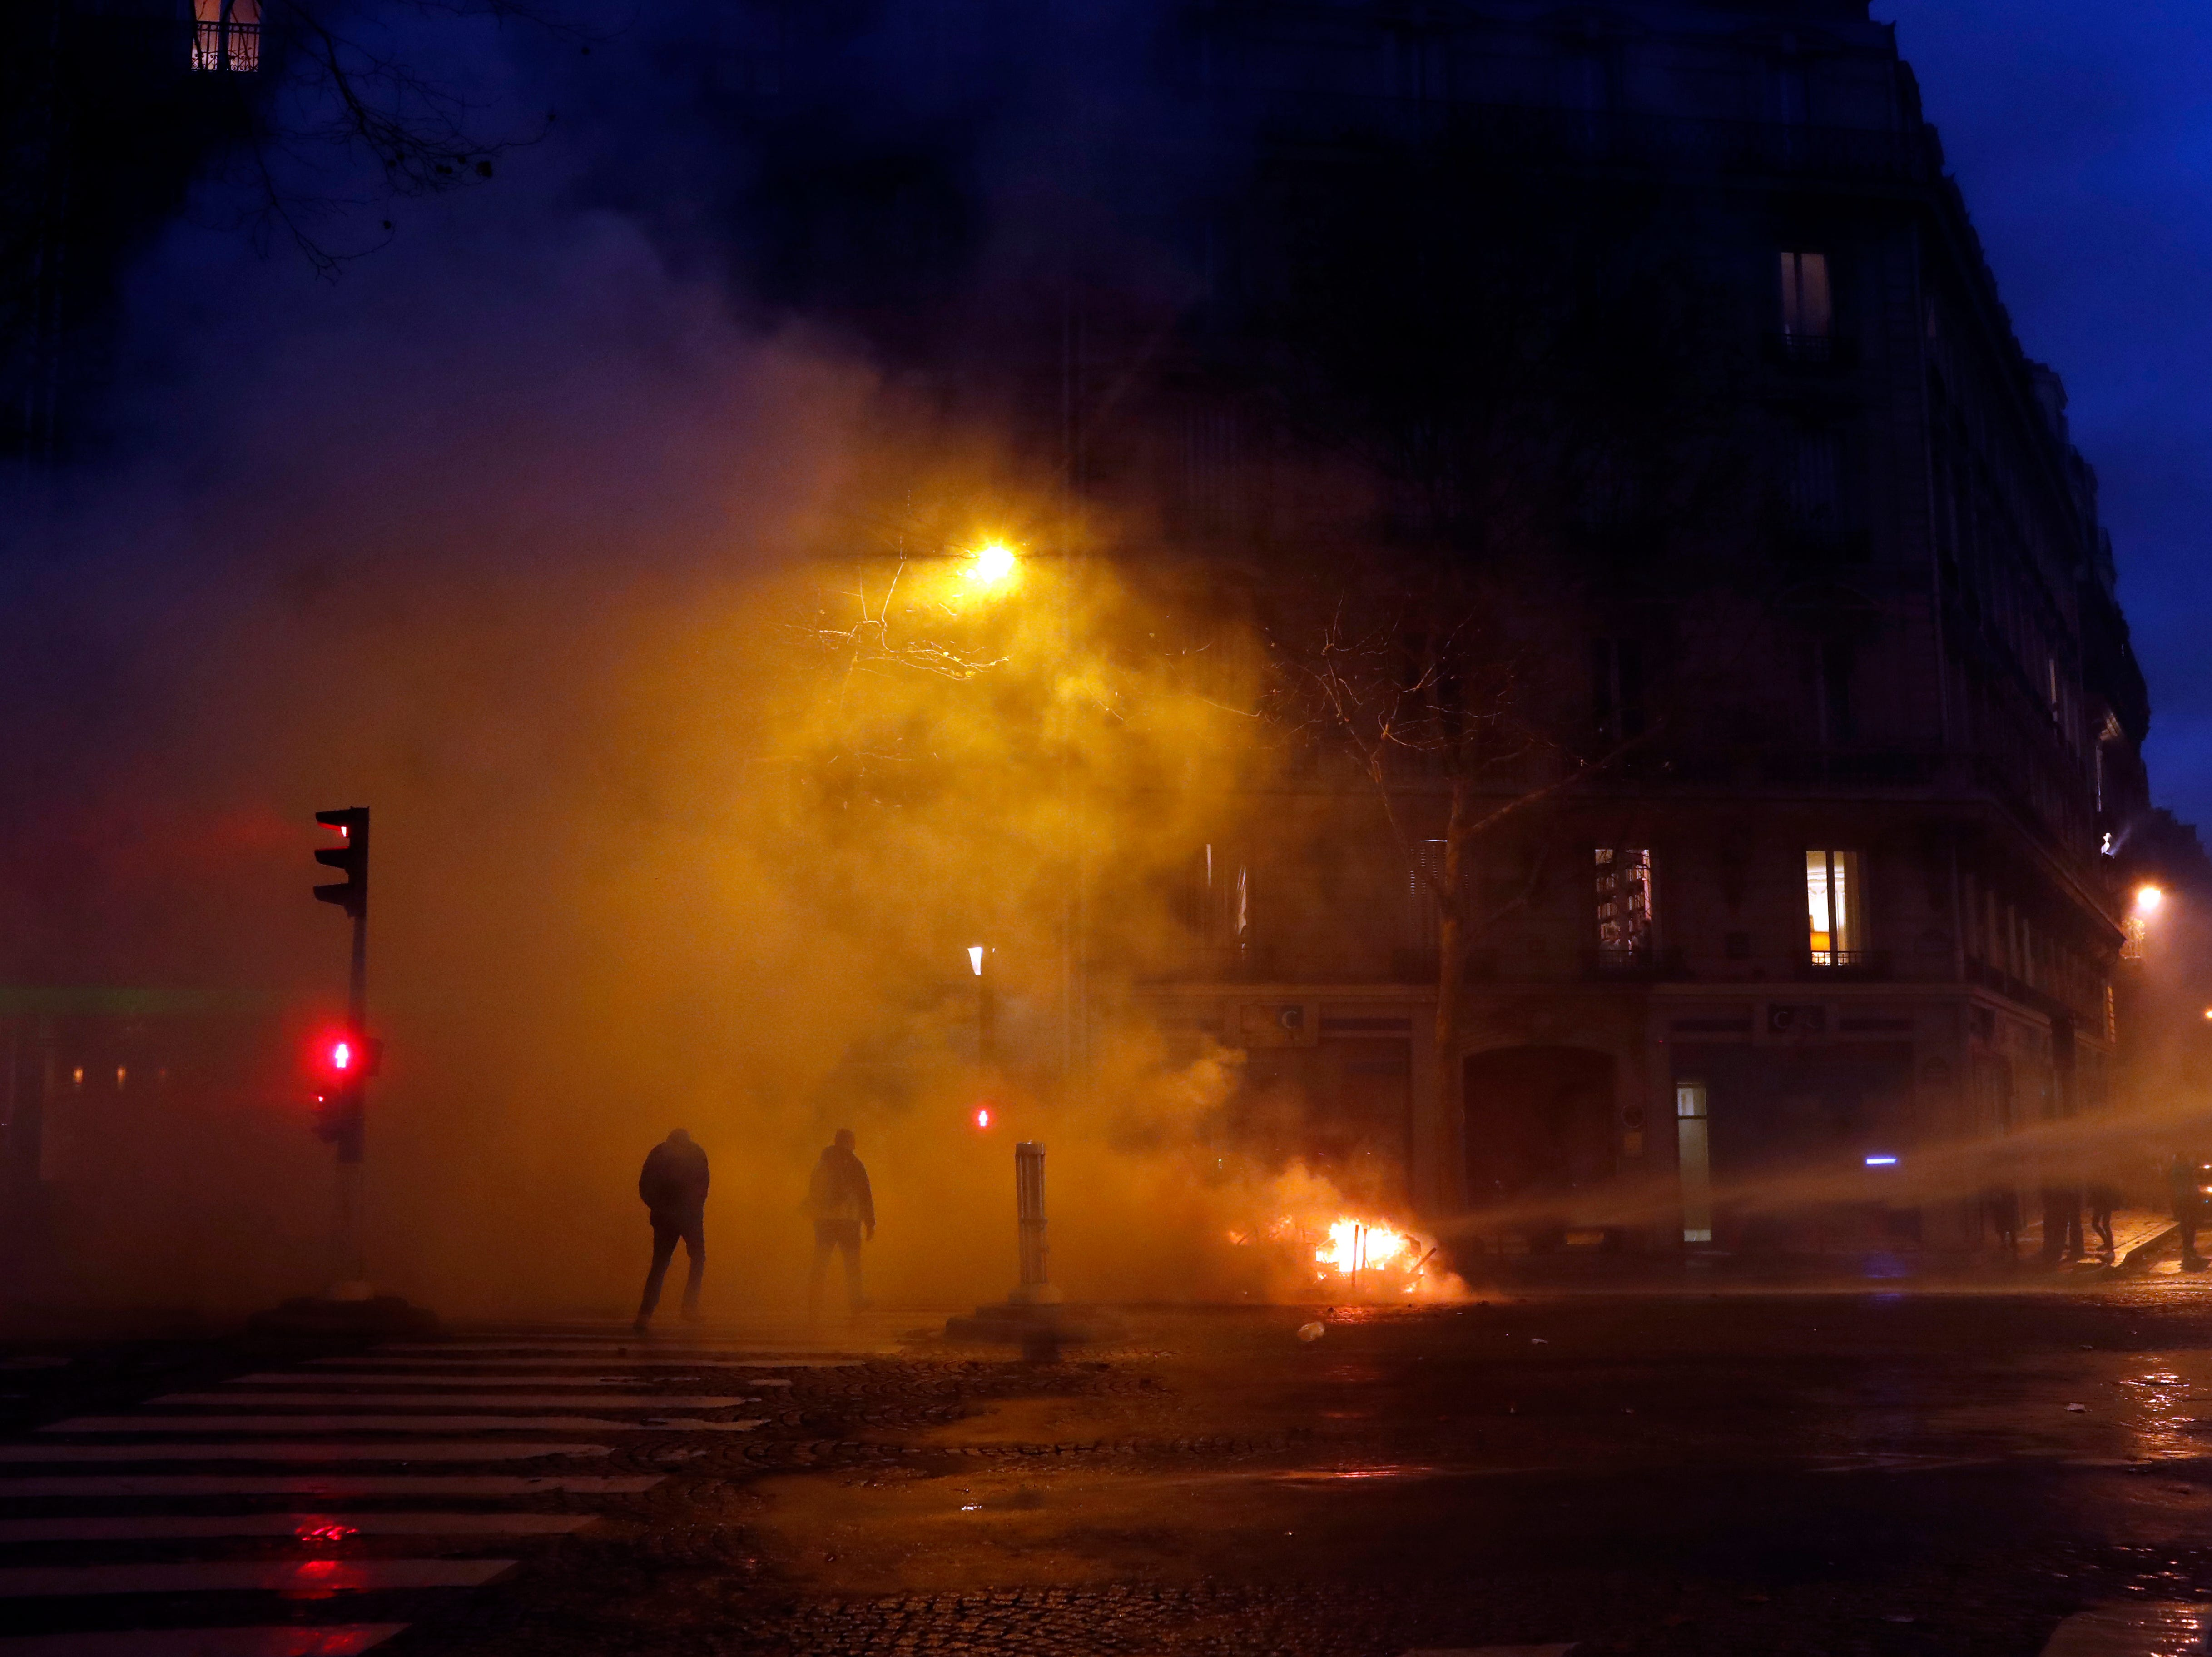 Demonstrators walk away from a cloud of tear gas fired by the police during an anti-government protest, in Paris, France, Saturday, Dec. 8, 2018. Crowds of protesters angry at President Emmanuel Macron and France's high taxes tried to converge on the presidential palace Saturday, some scuffling with police firing tear gas, amid exceptional security measures aimed at preventing a repeat of last week's rioting.